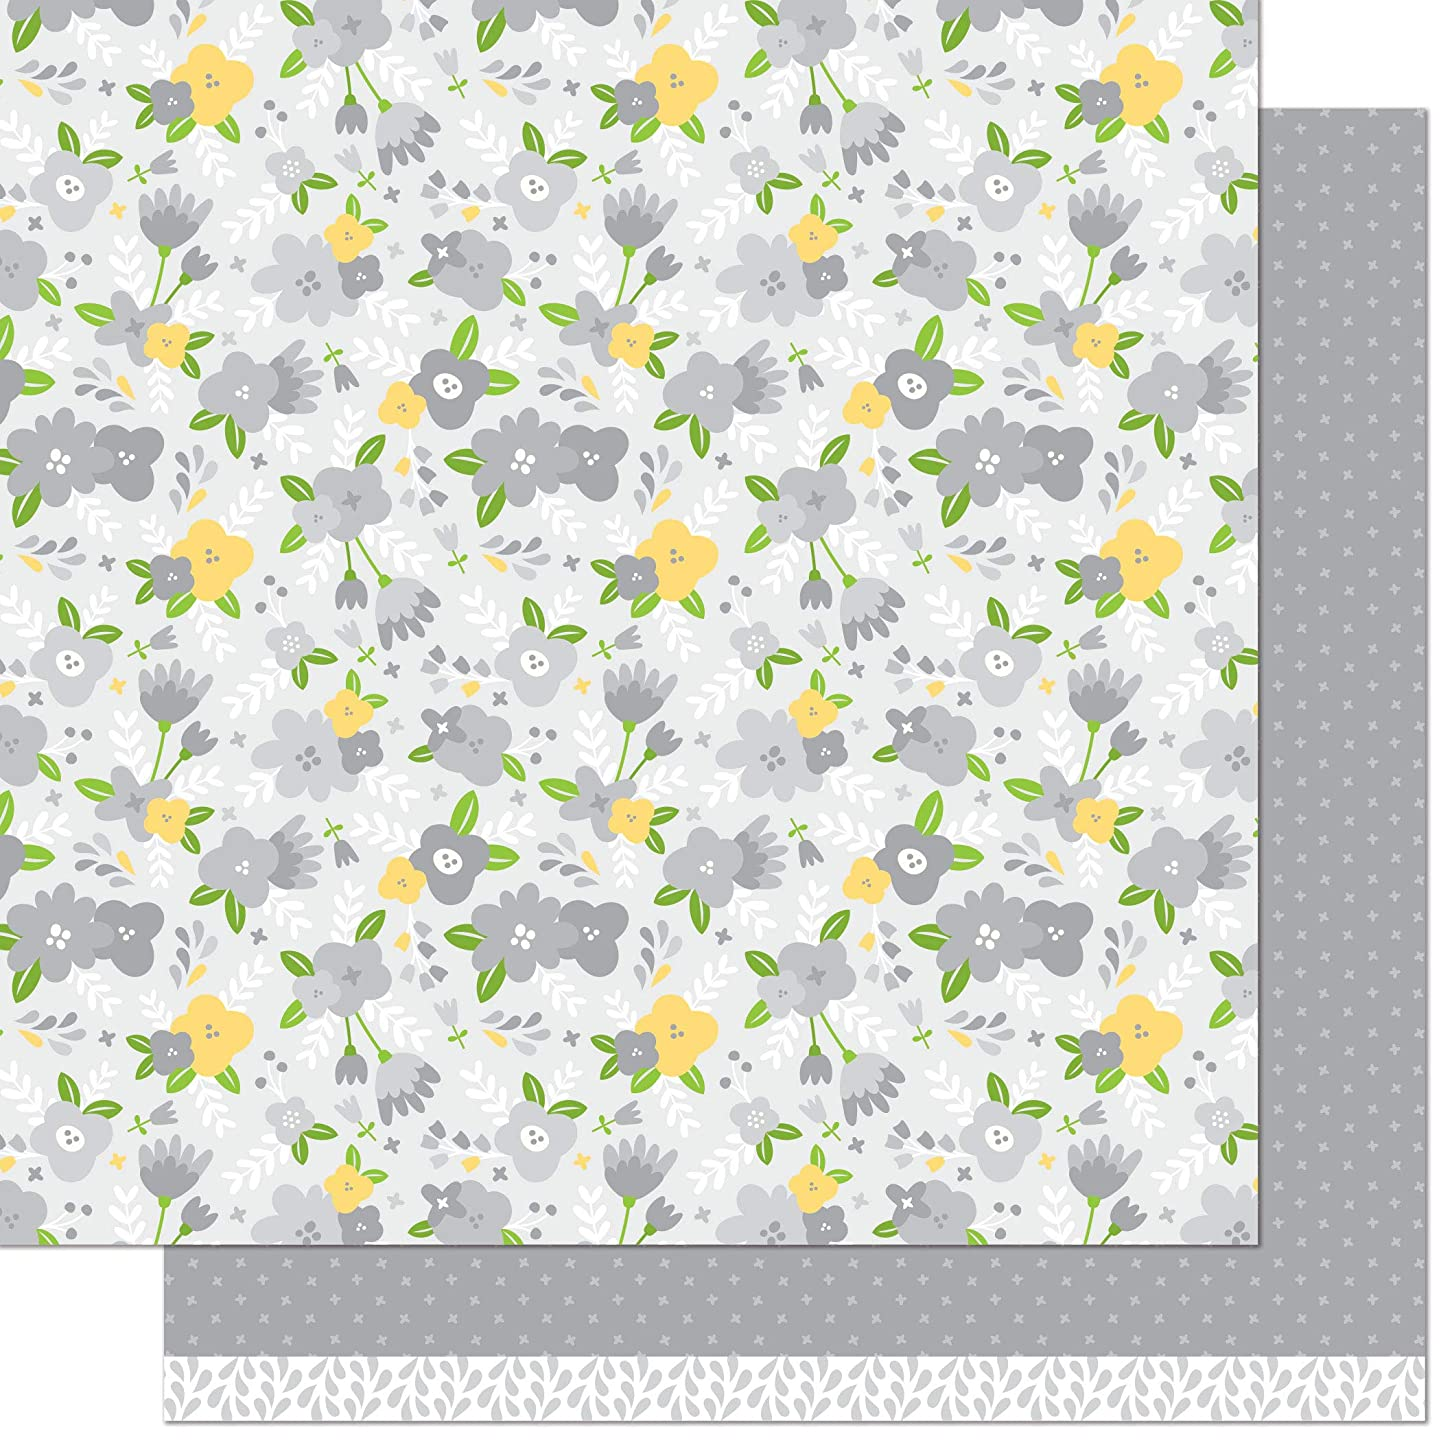 Lawn Fawn LF1875 Karolina 12x12 Patterned Paper (Pack of 12)